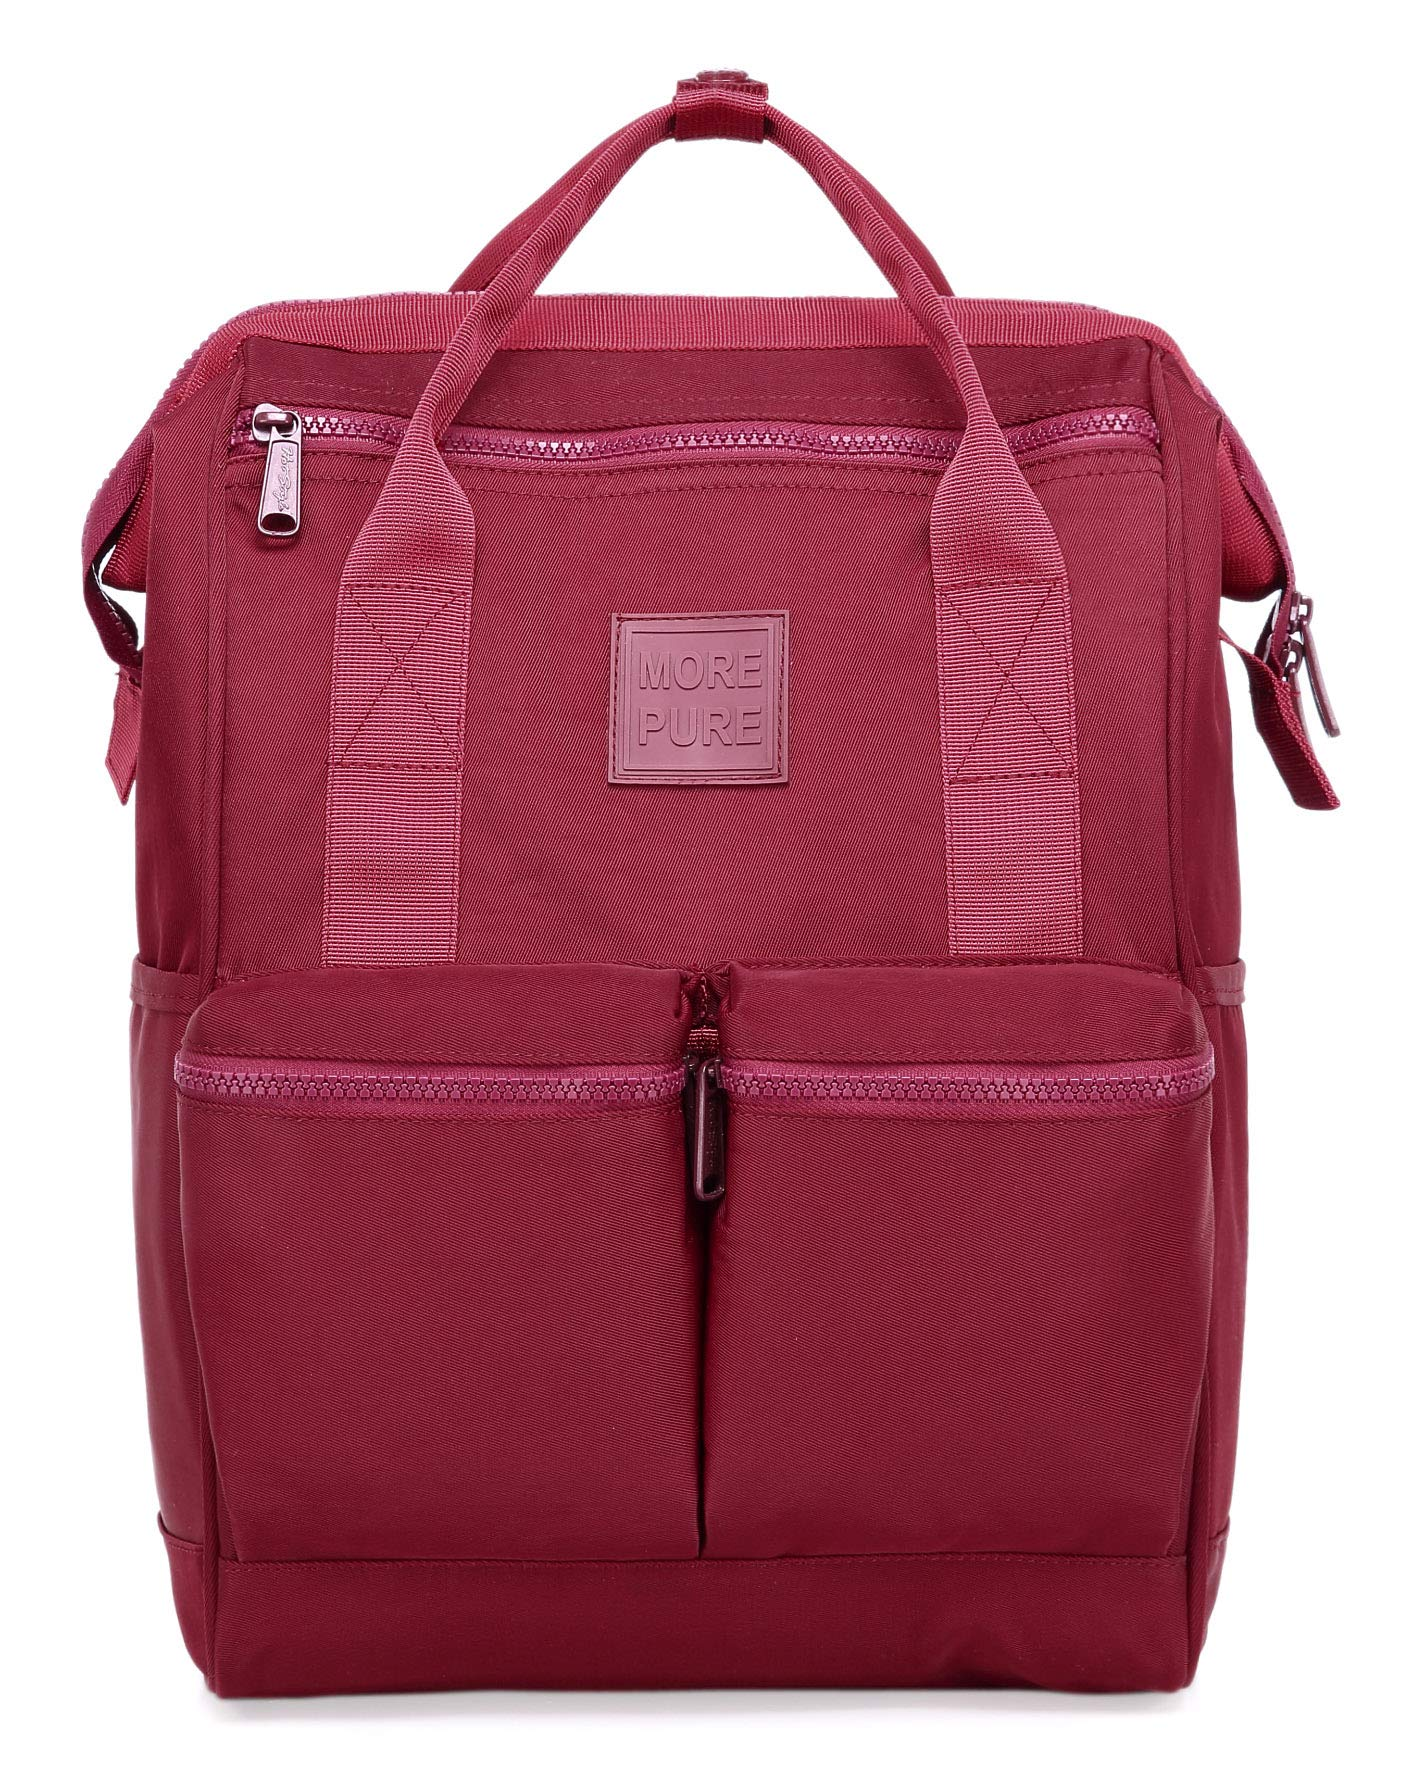 DISA Chic Doctor Bag Style College Backpack Travel Daypack | 17.3x10.6x6.7in | Marron